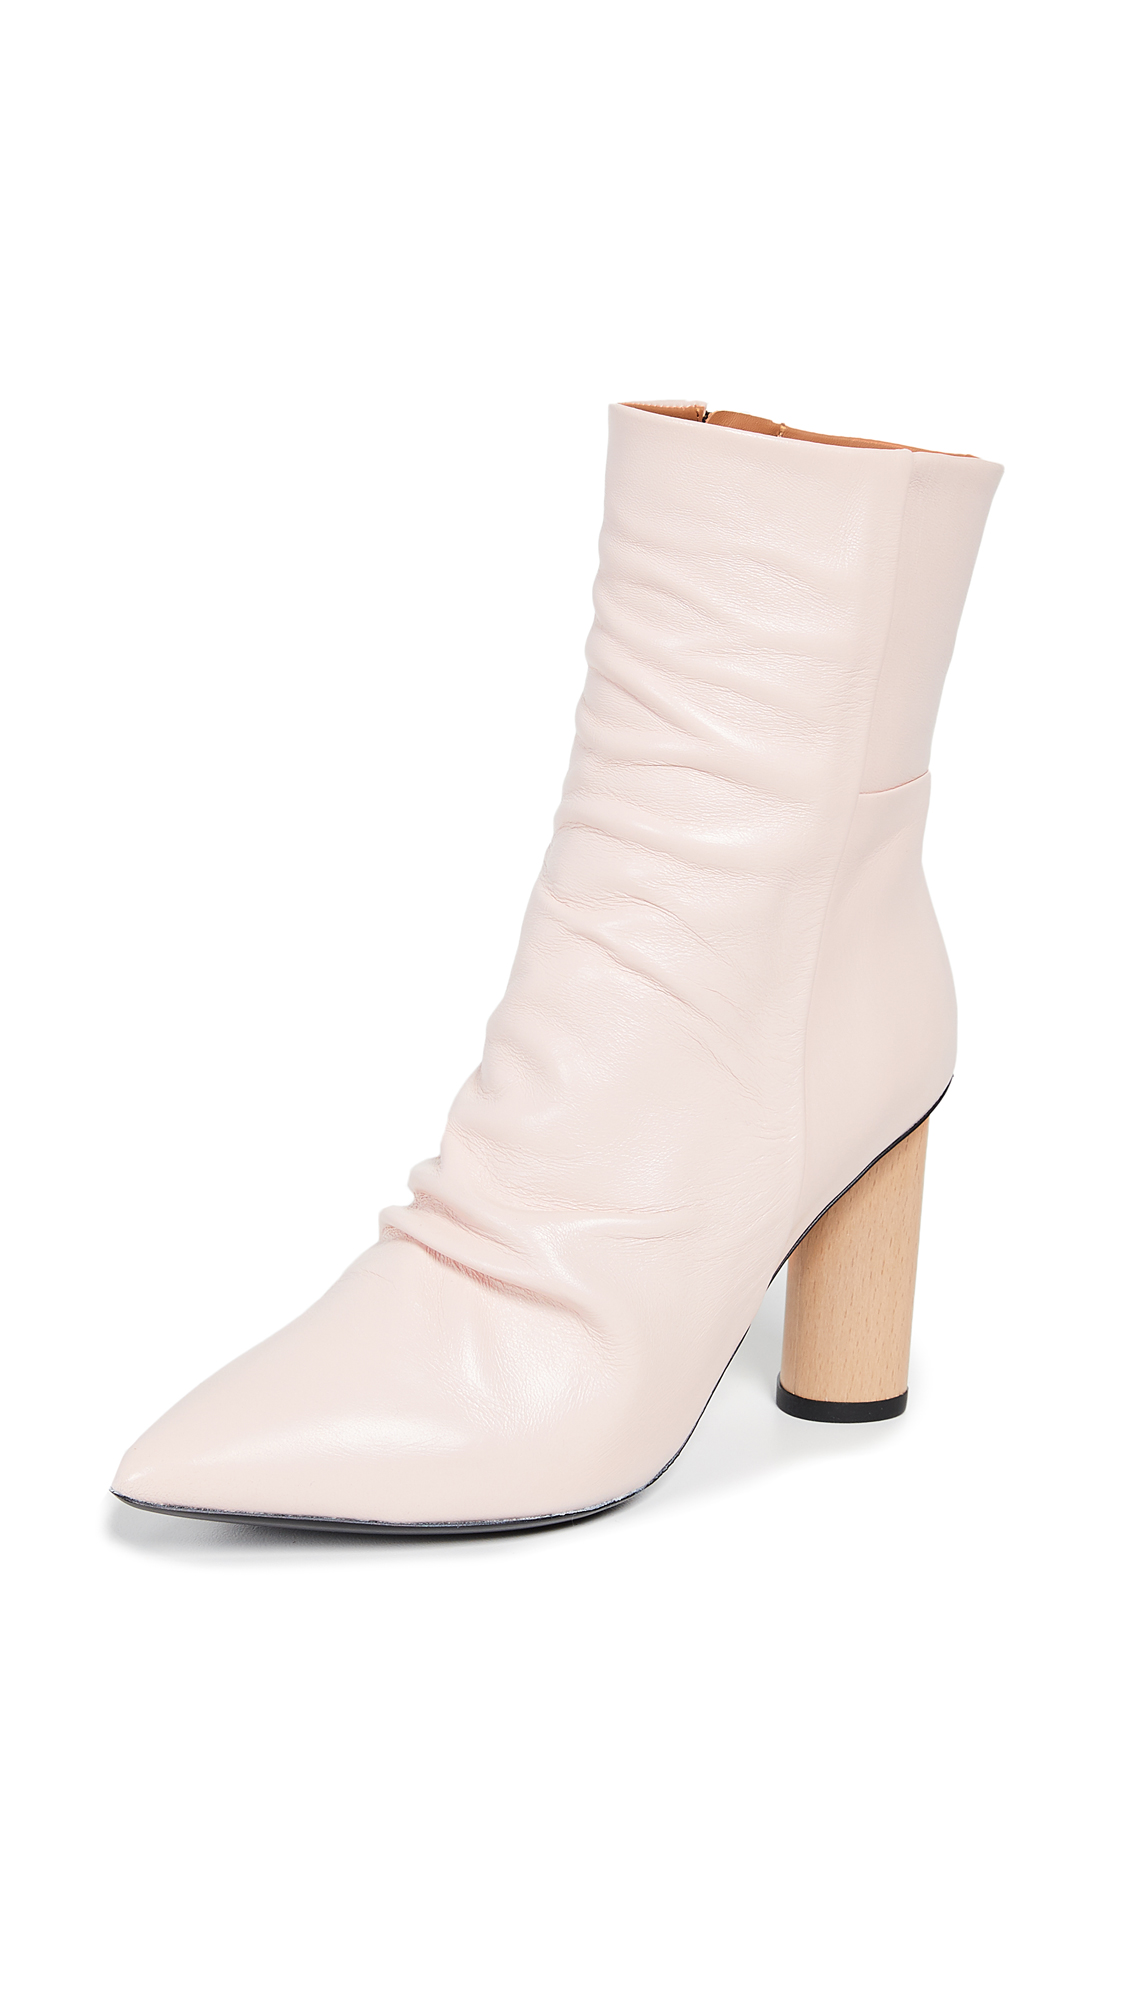 IRO Nazca Boots - Light Pink